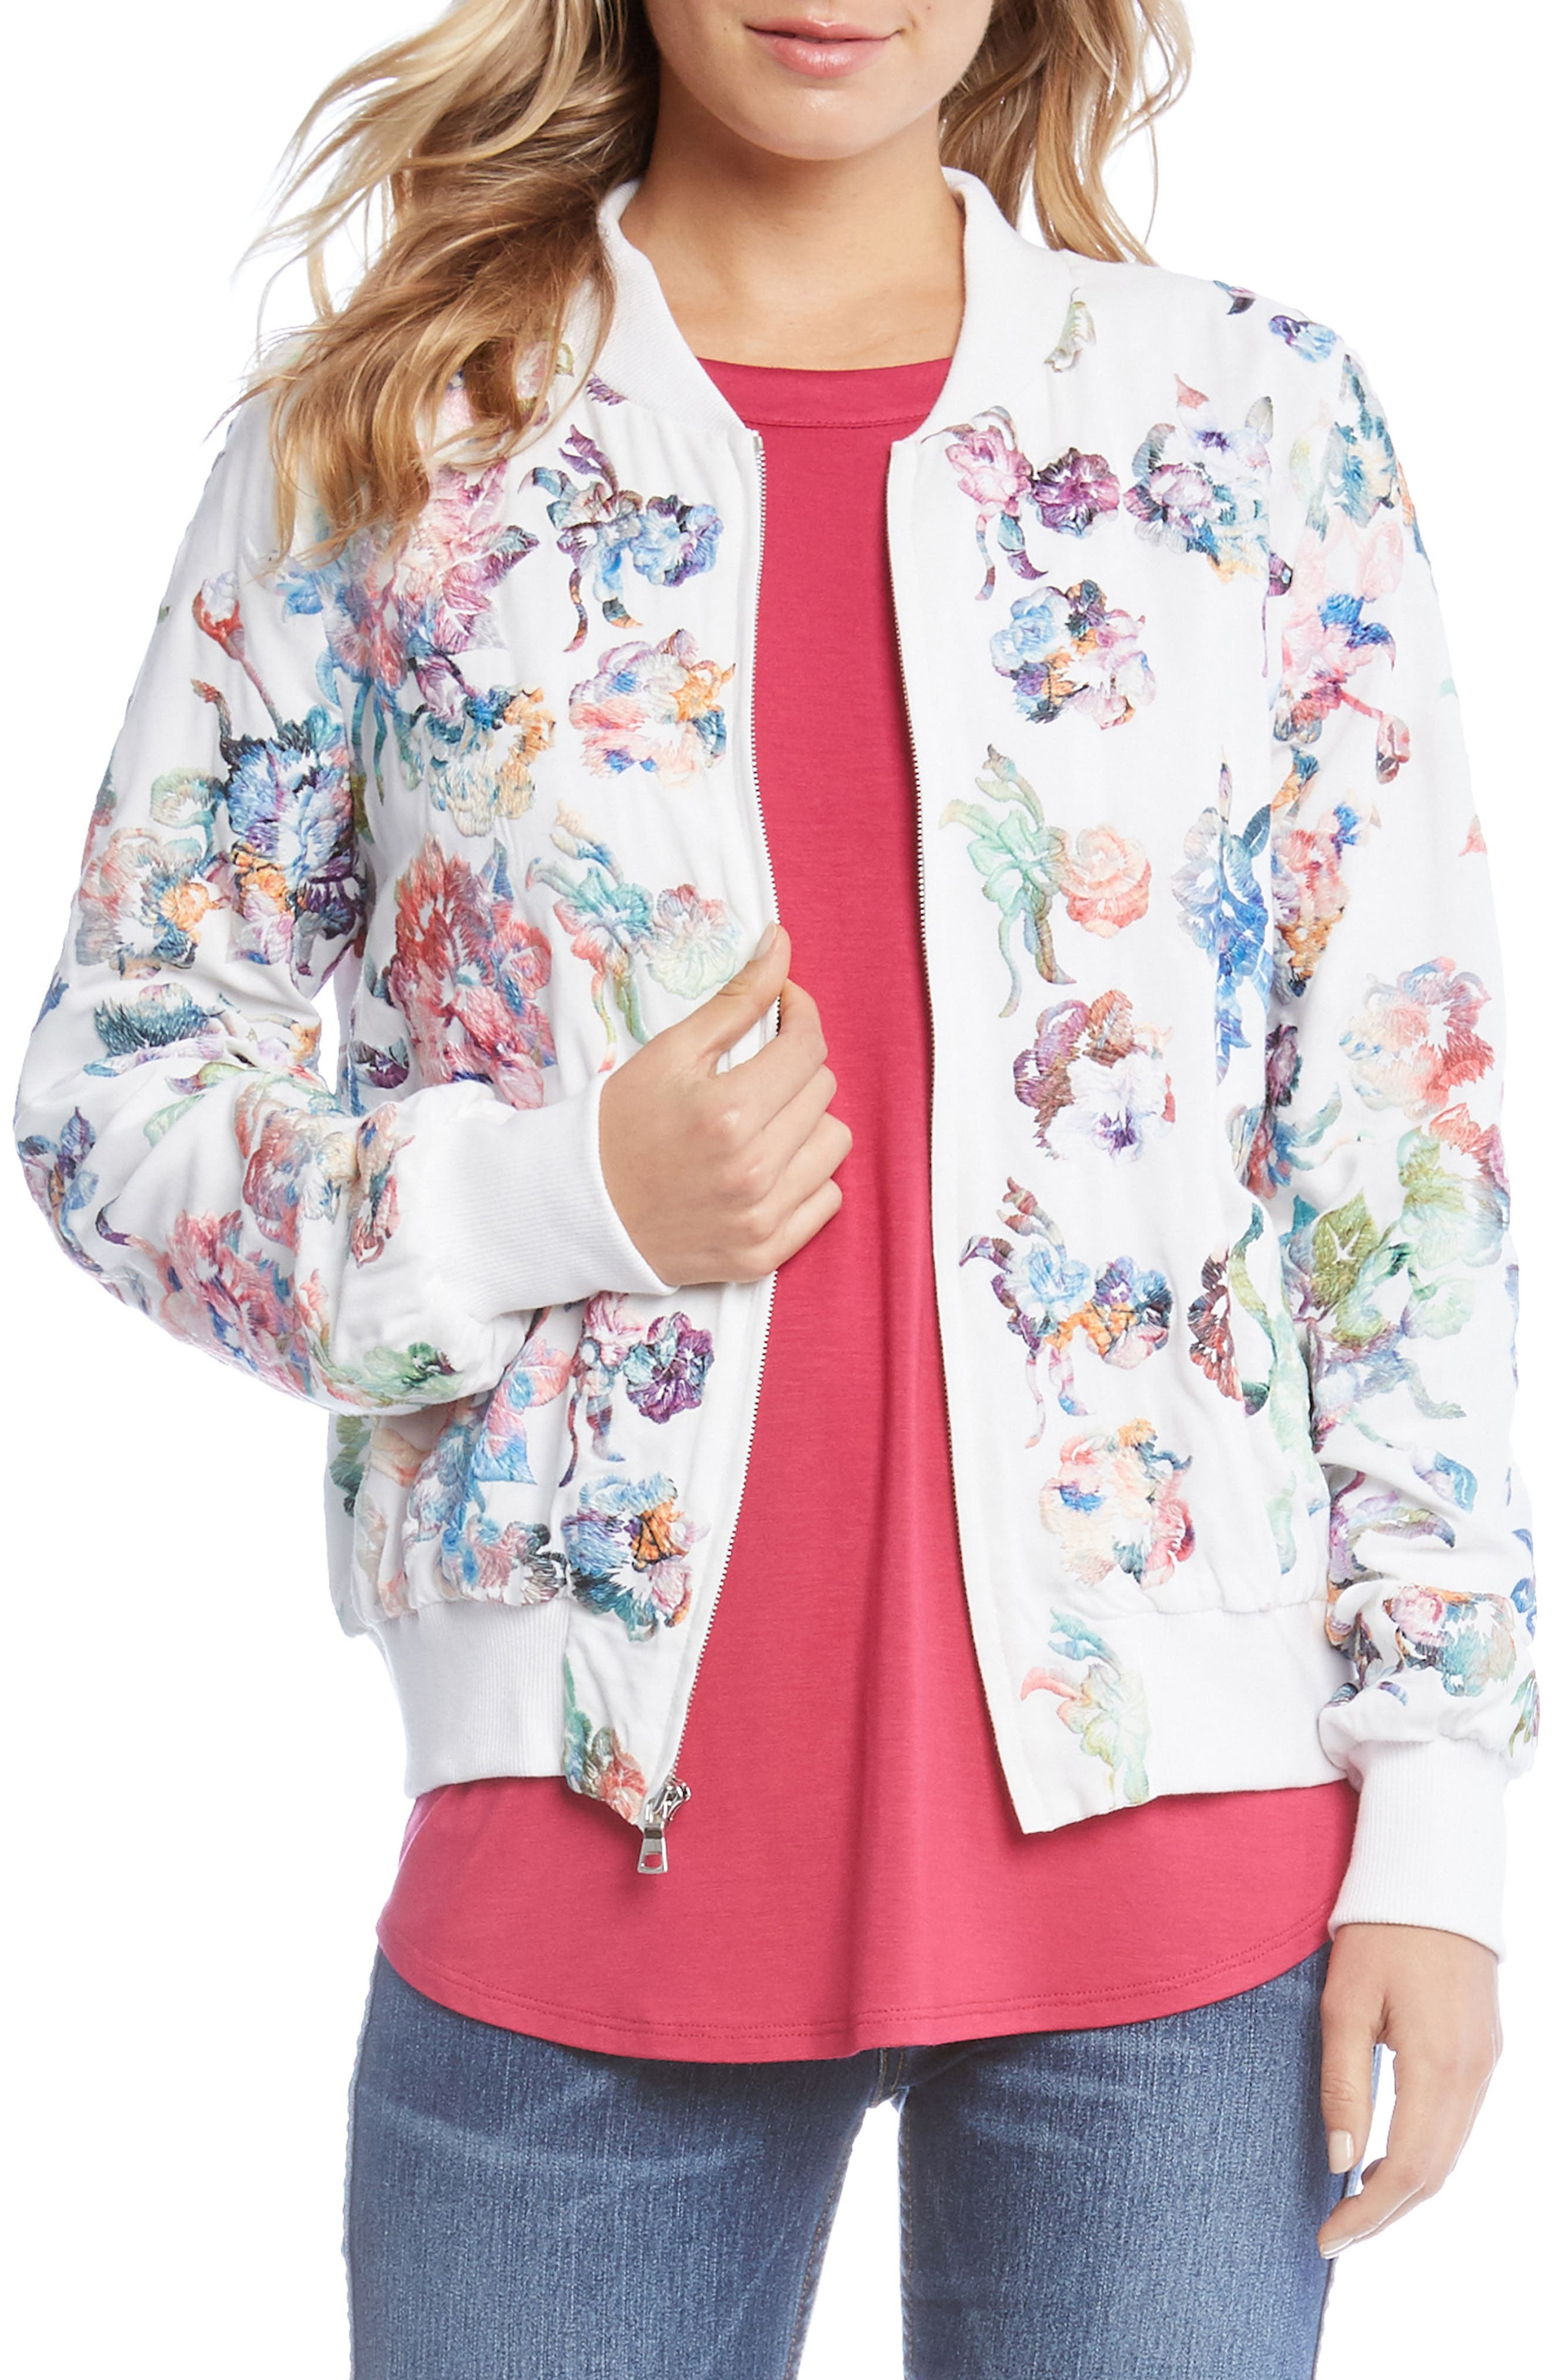 Embroidered Floral Bomber Jacket,                         Main,                         color, Multi-Colored